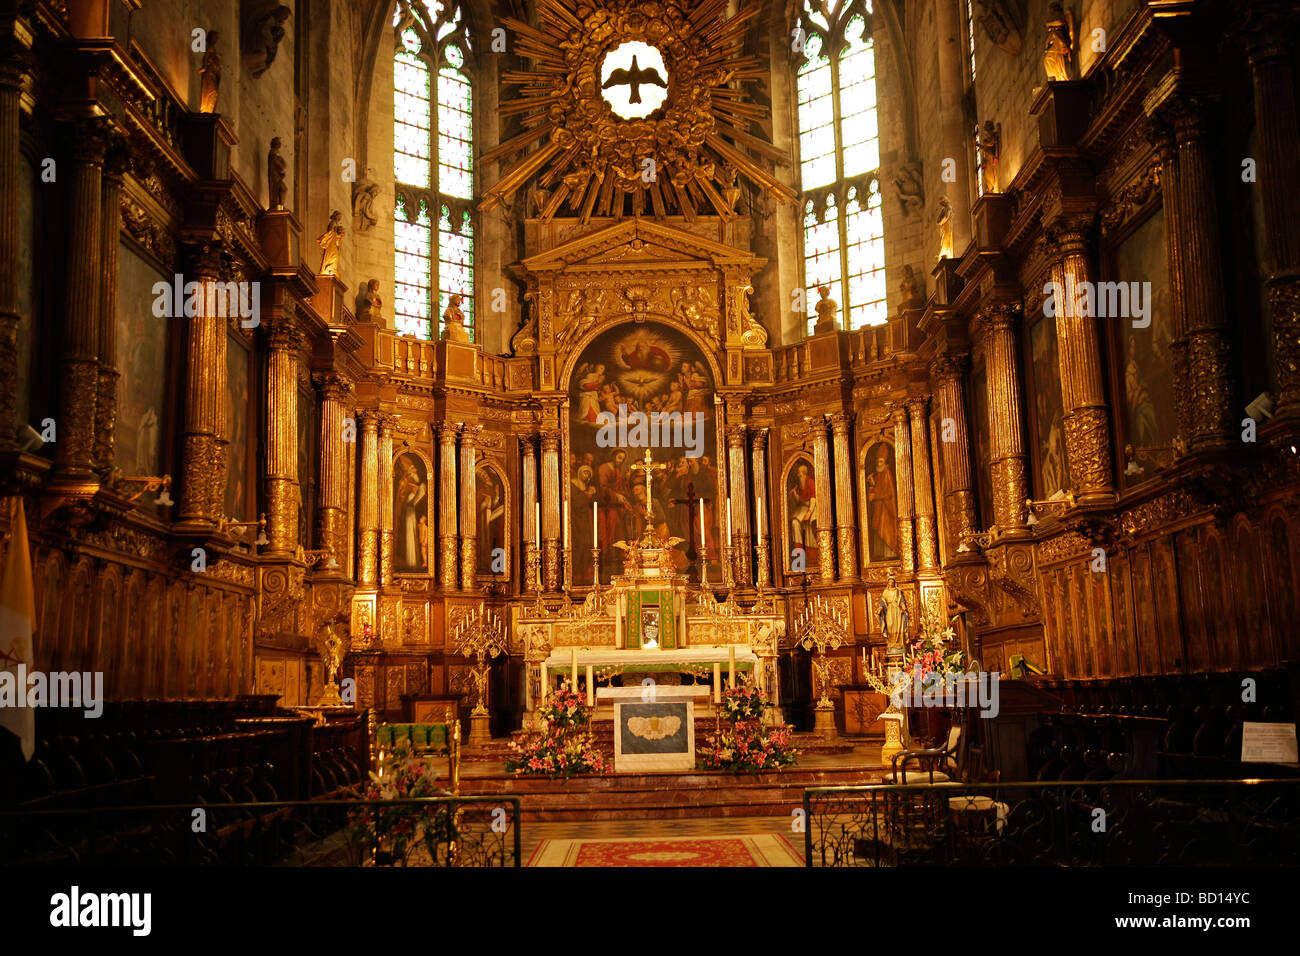 Interior and altar of the St. Pierre Church in Avignon, Provence, France, Europe - Stock Image